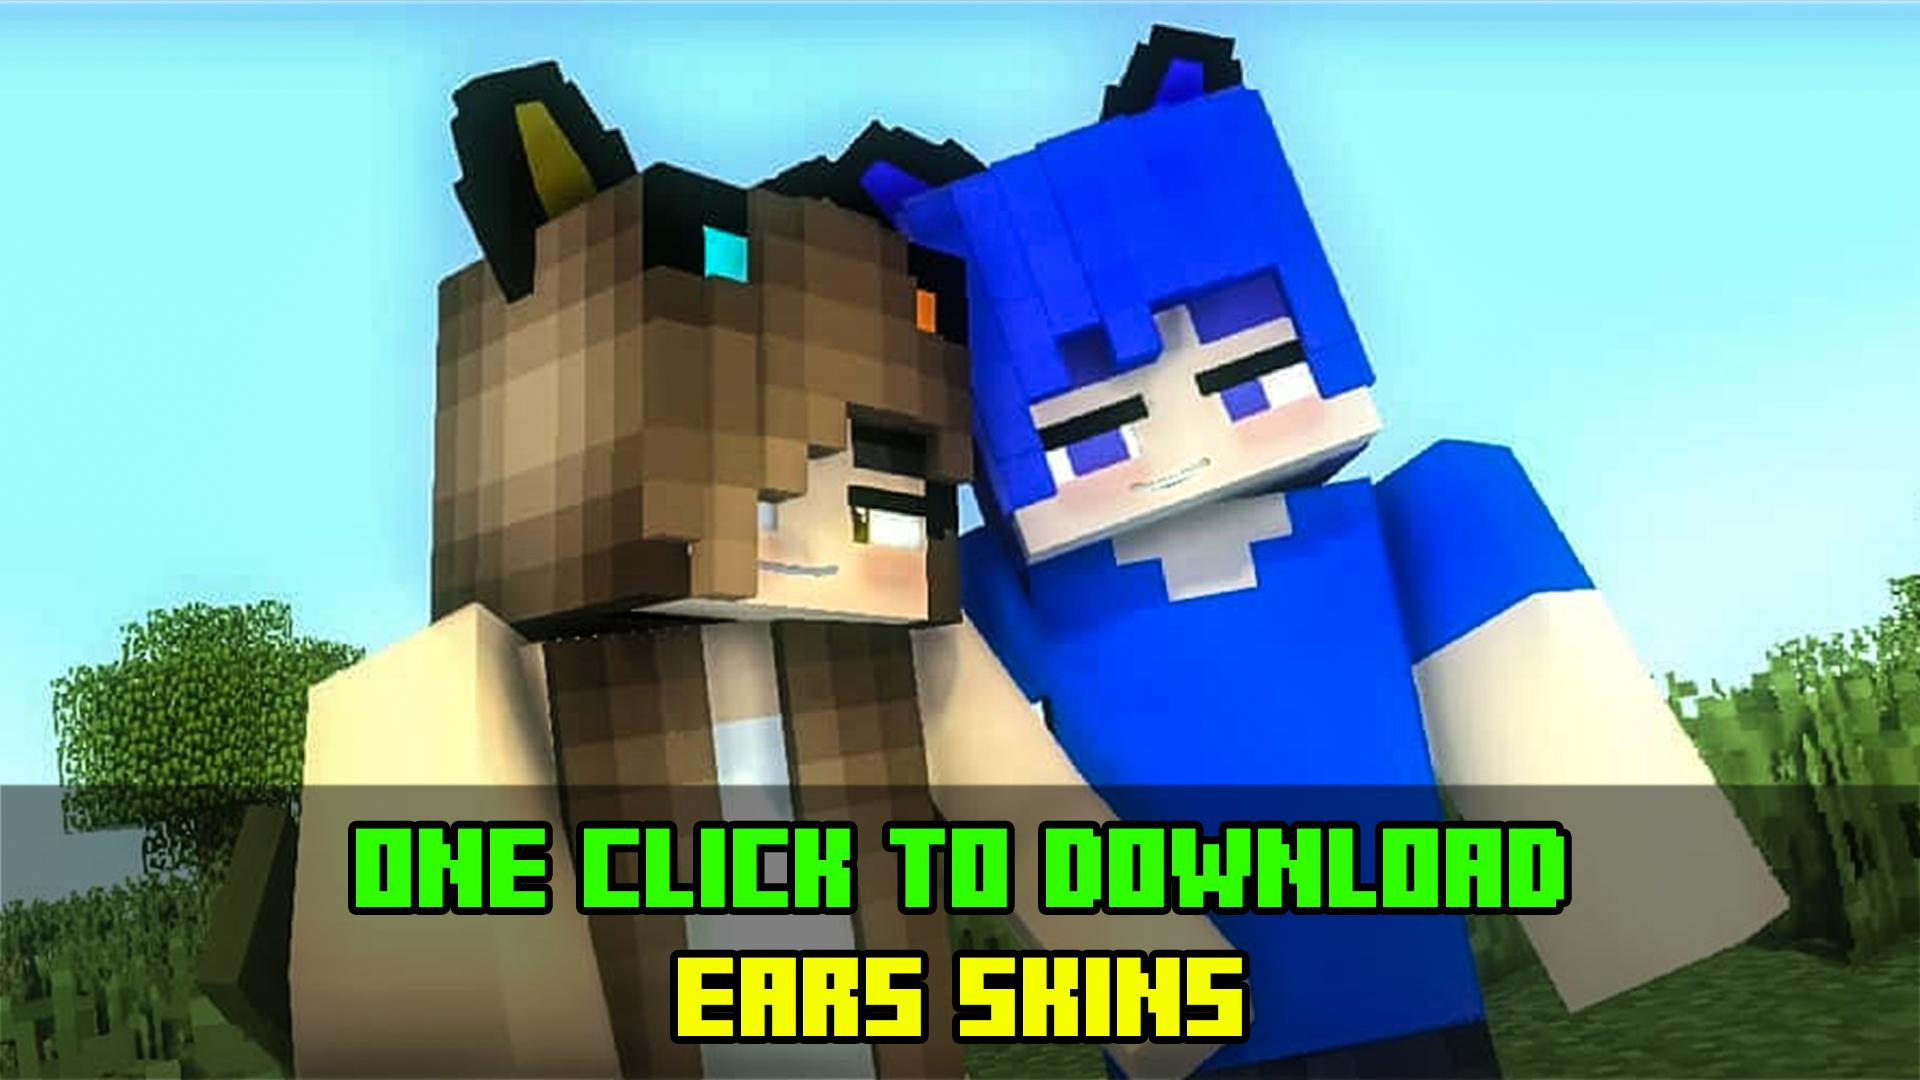 Ears Skins for Android - APK Download